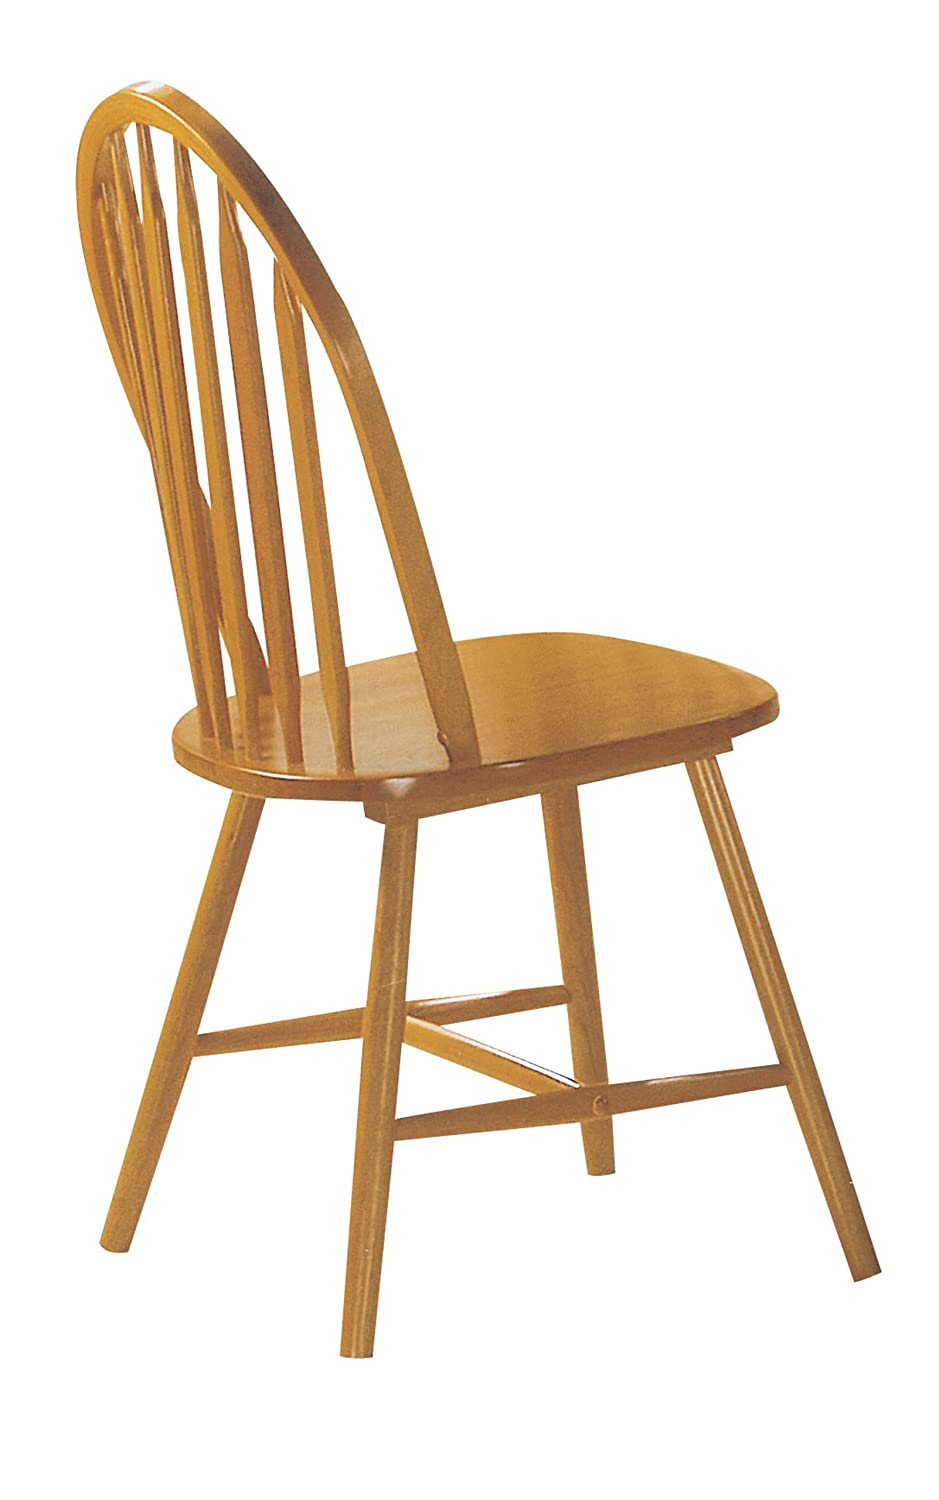 ACME 02482OAK Set of 4 Farmhouse Arrow Back Windsor Side Chair, Oak Finish